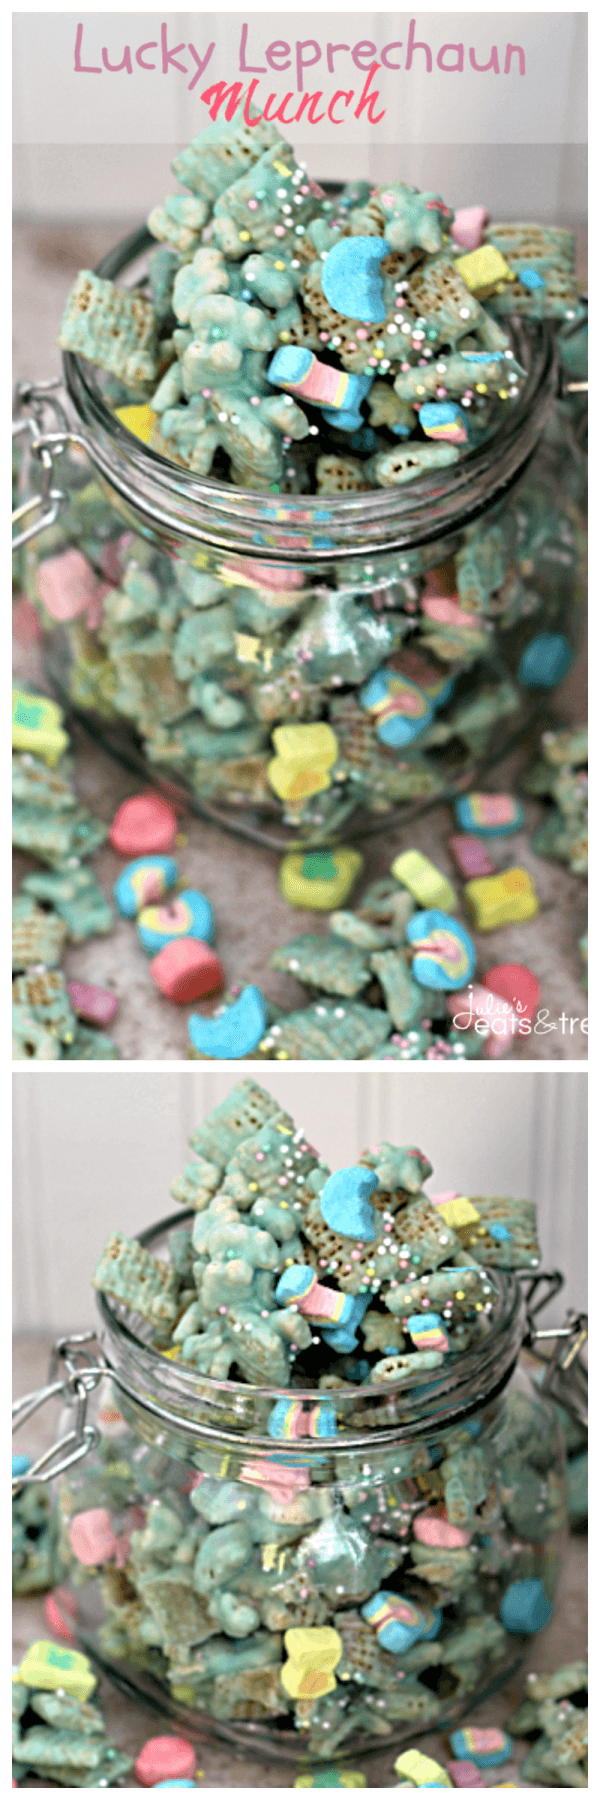 Lucky Leprechaun Munch ~ Chex Mix Loaded with Lucky Charms!